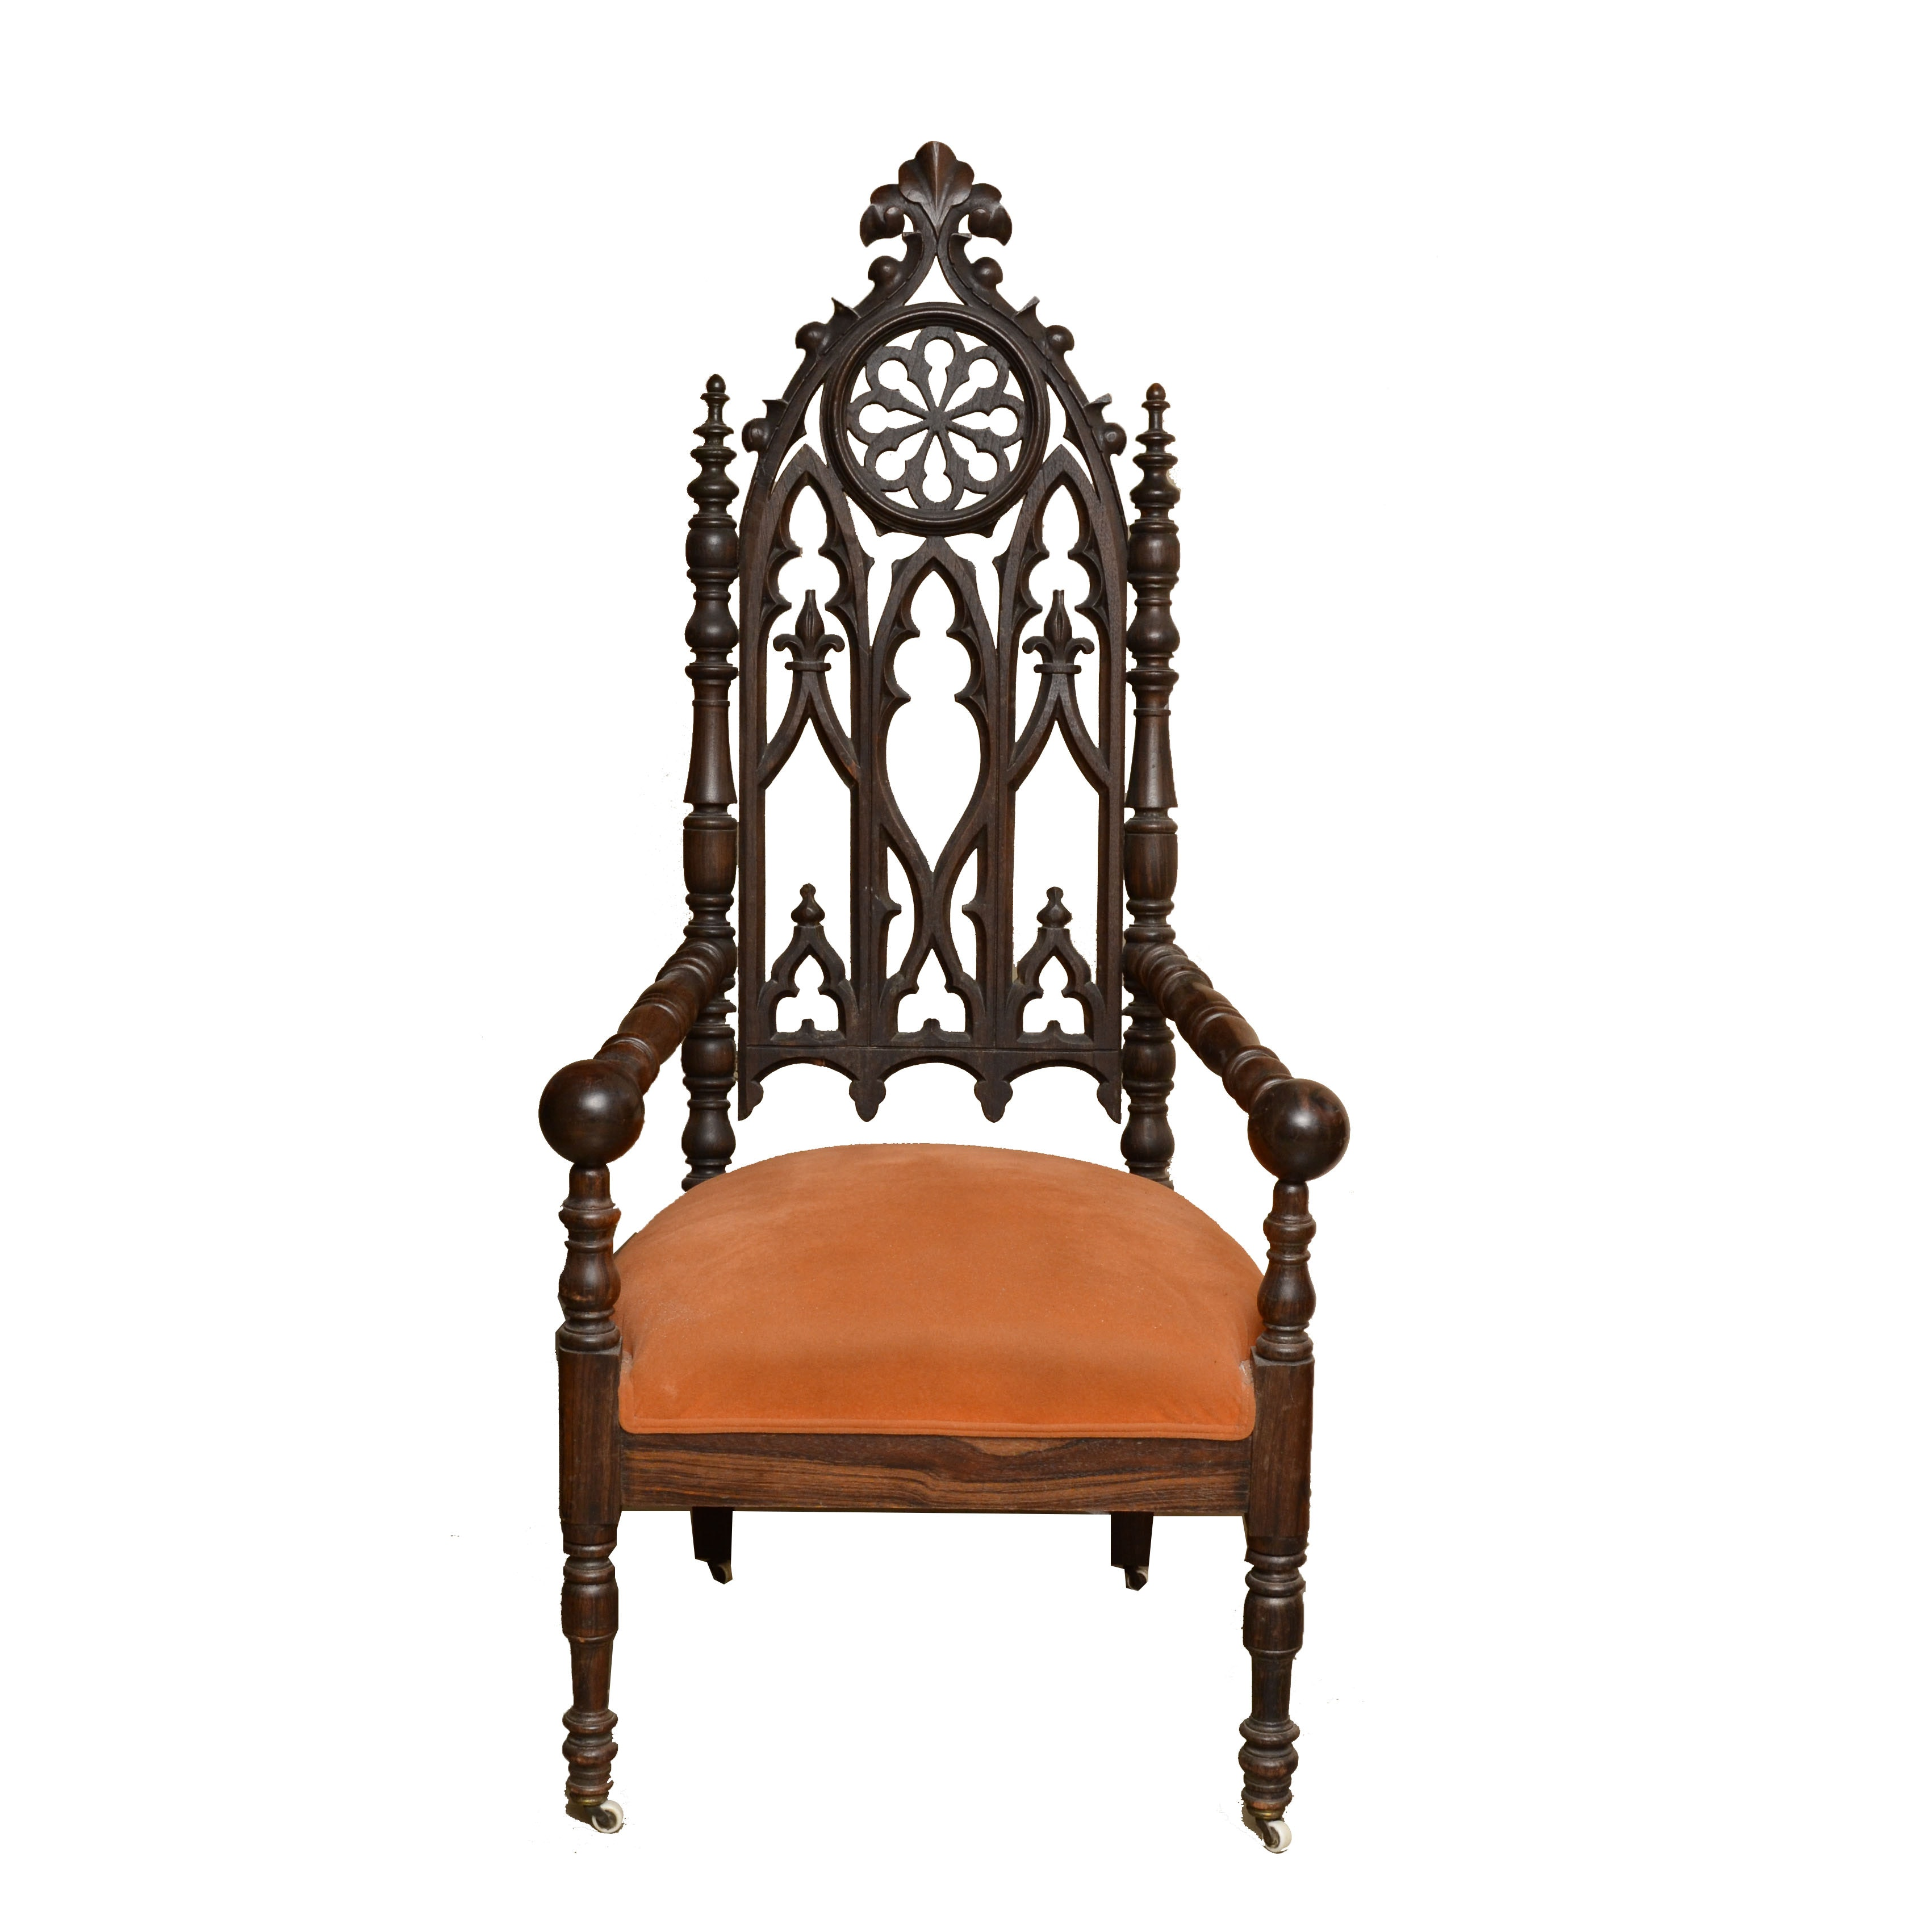 19th Century Gothic Revival Armchair with Upholstered Seat